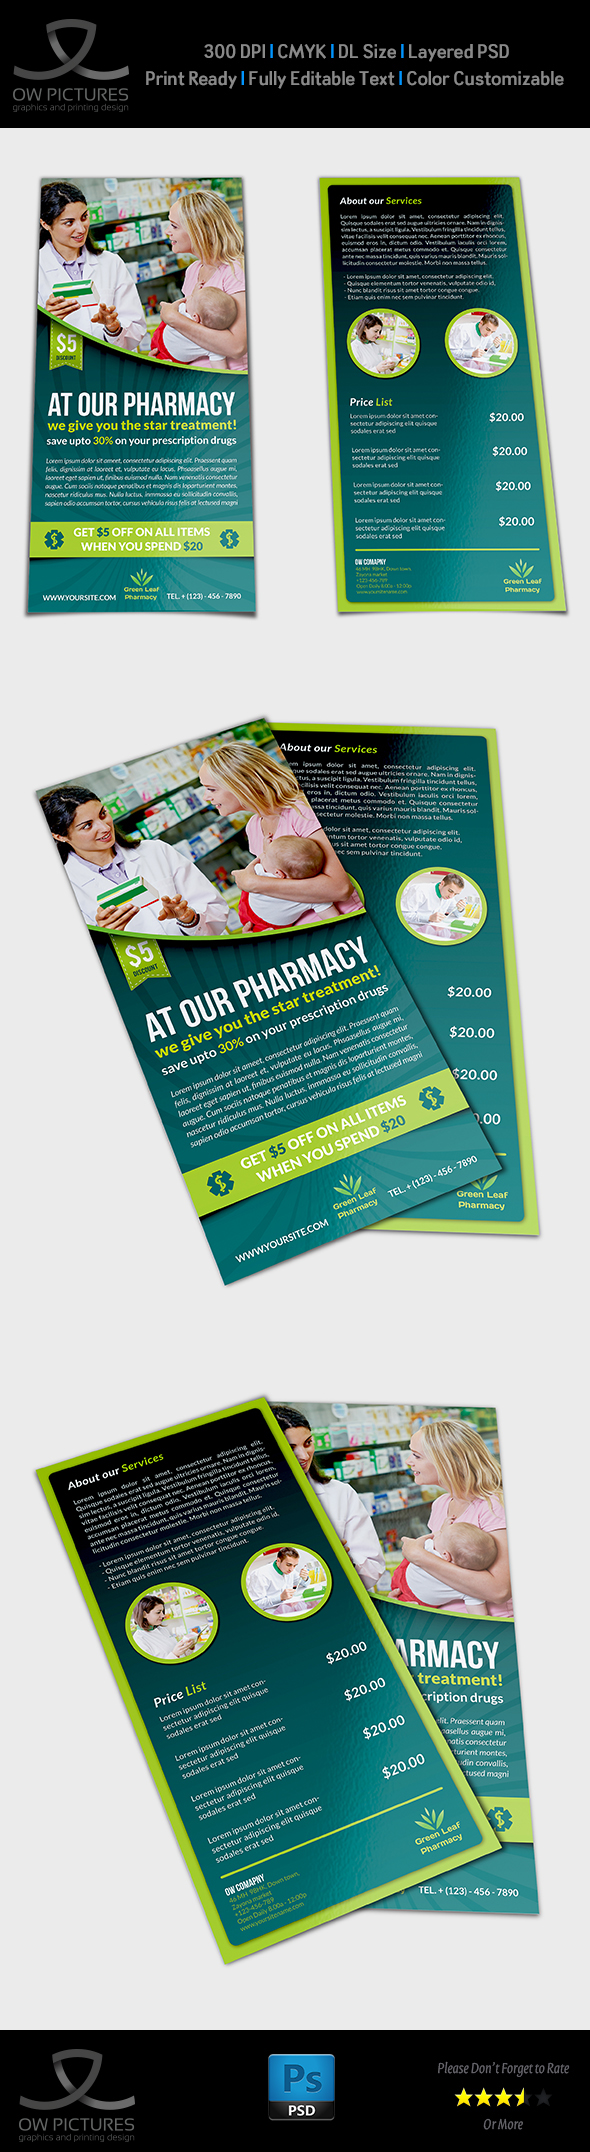 Pharmacy Flyer DL Size Template on Behance